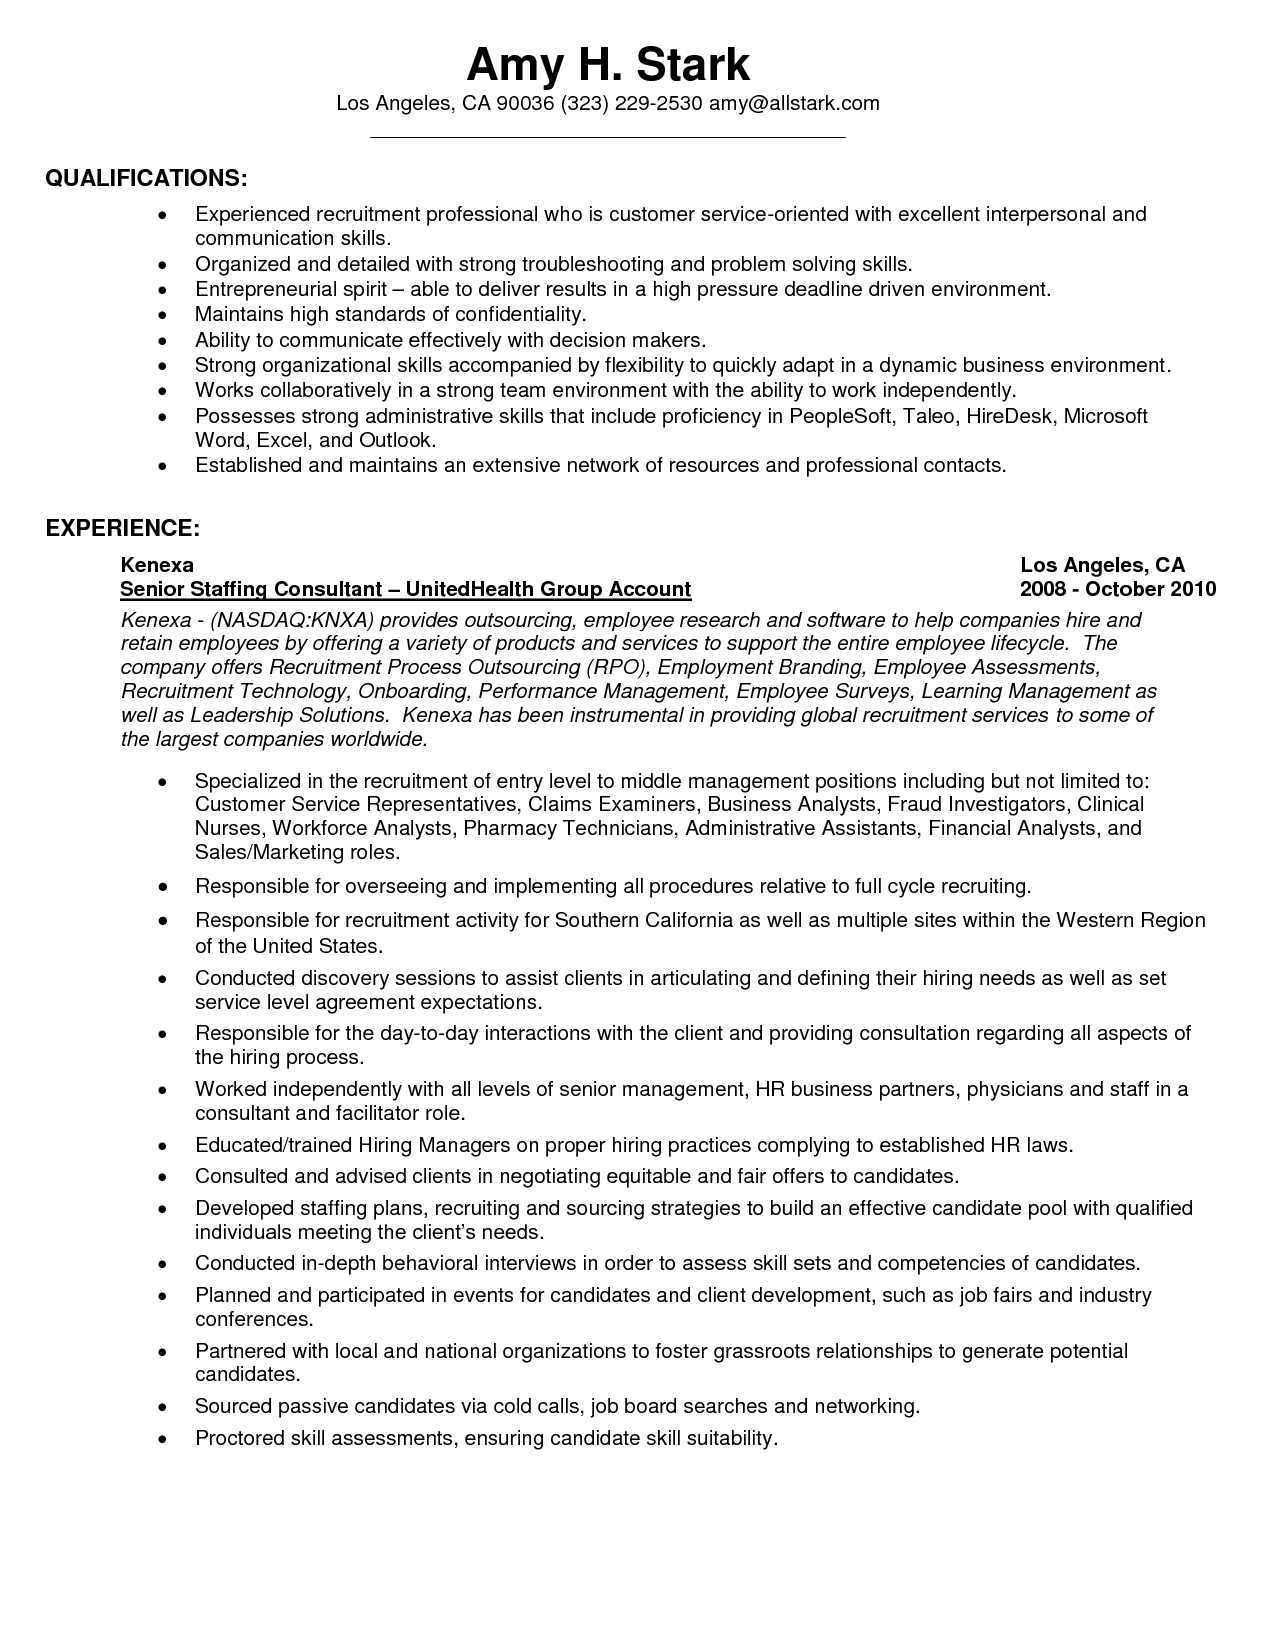 Skills To Mention On A Resume Excellent Customer Service Skills Resume  Sample Resume Center .